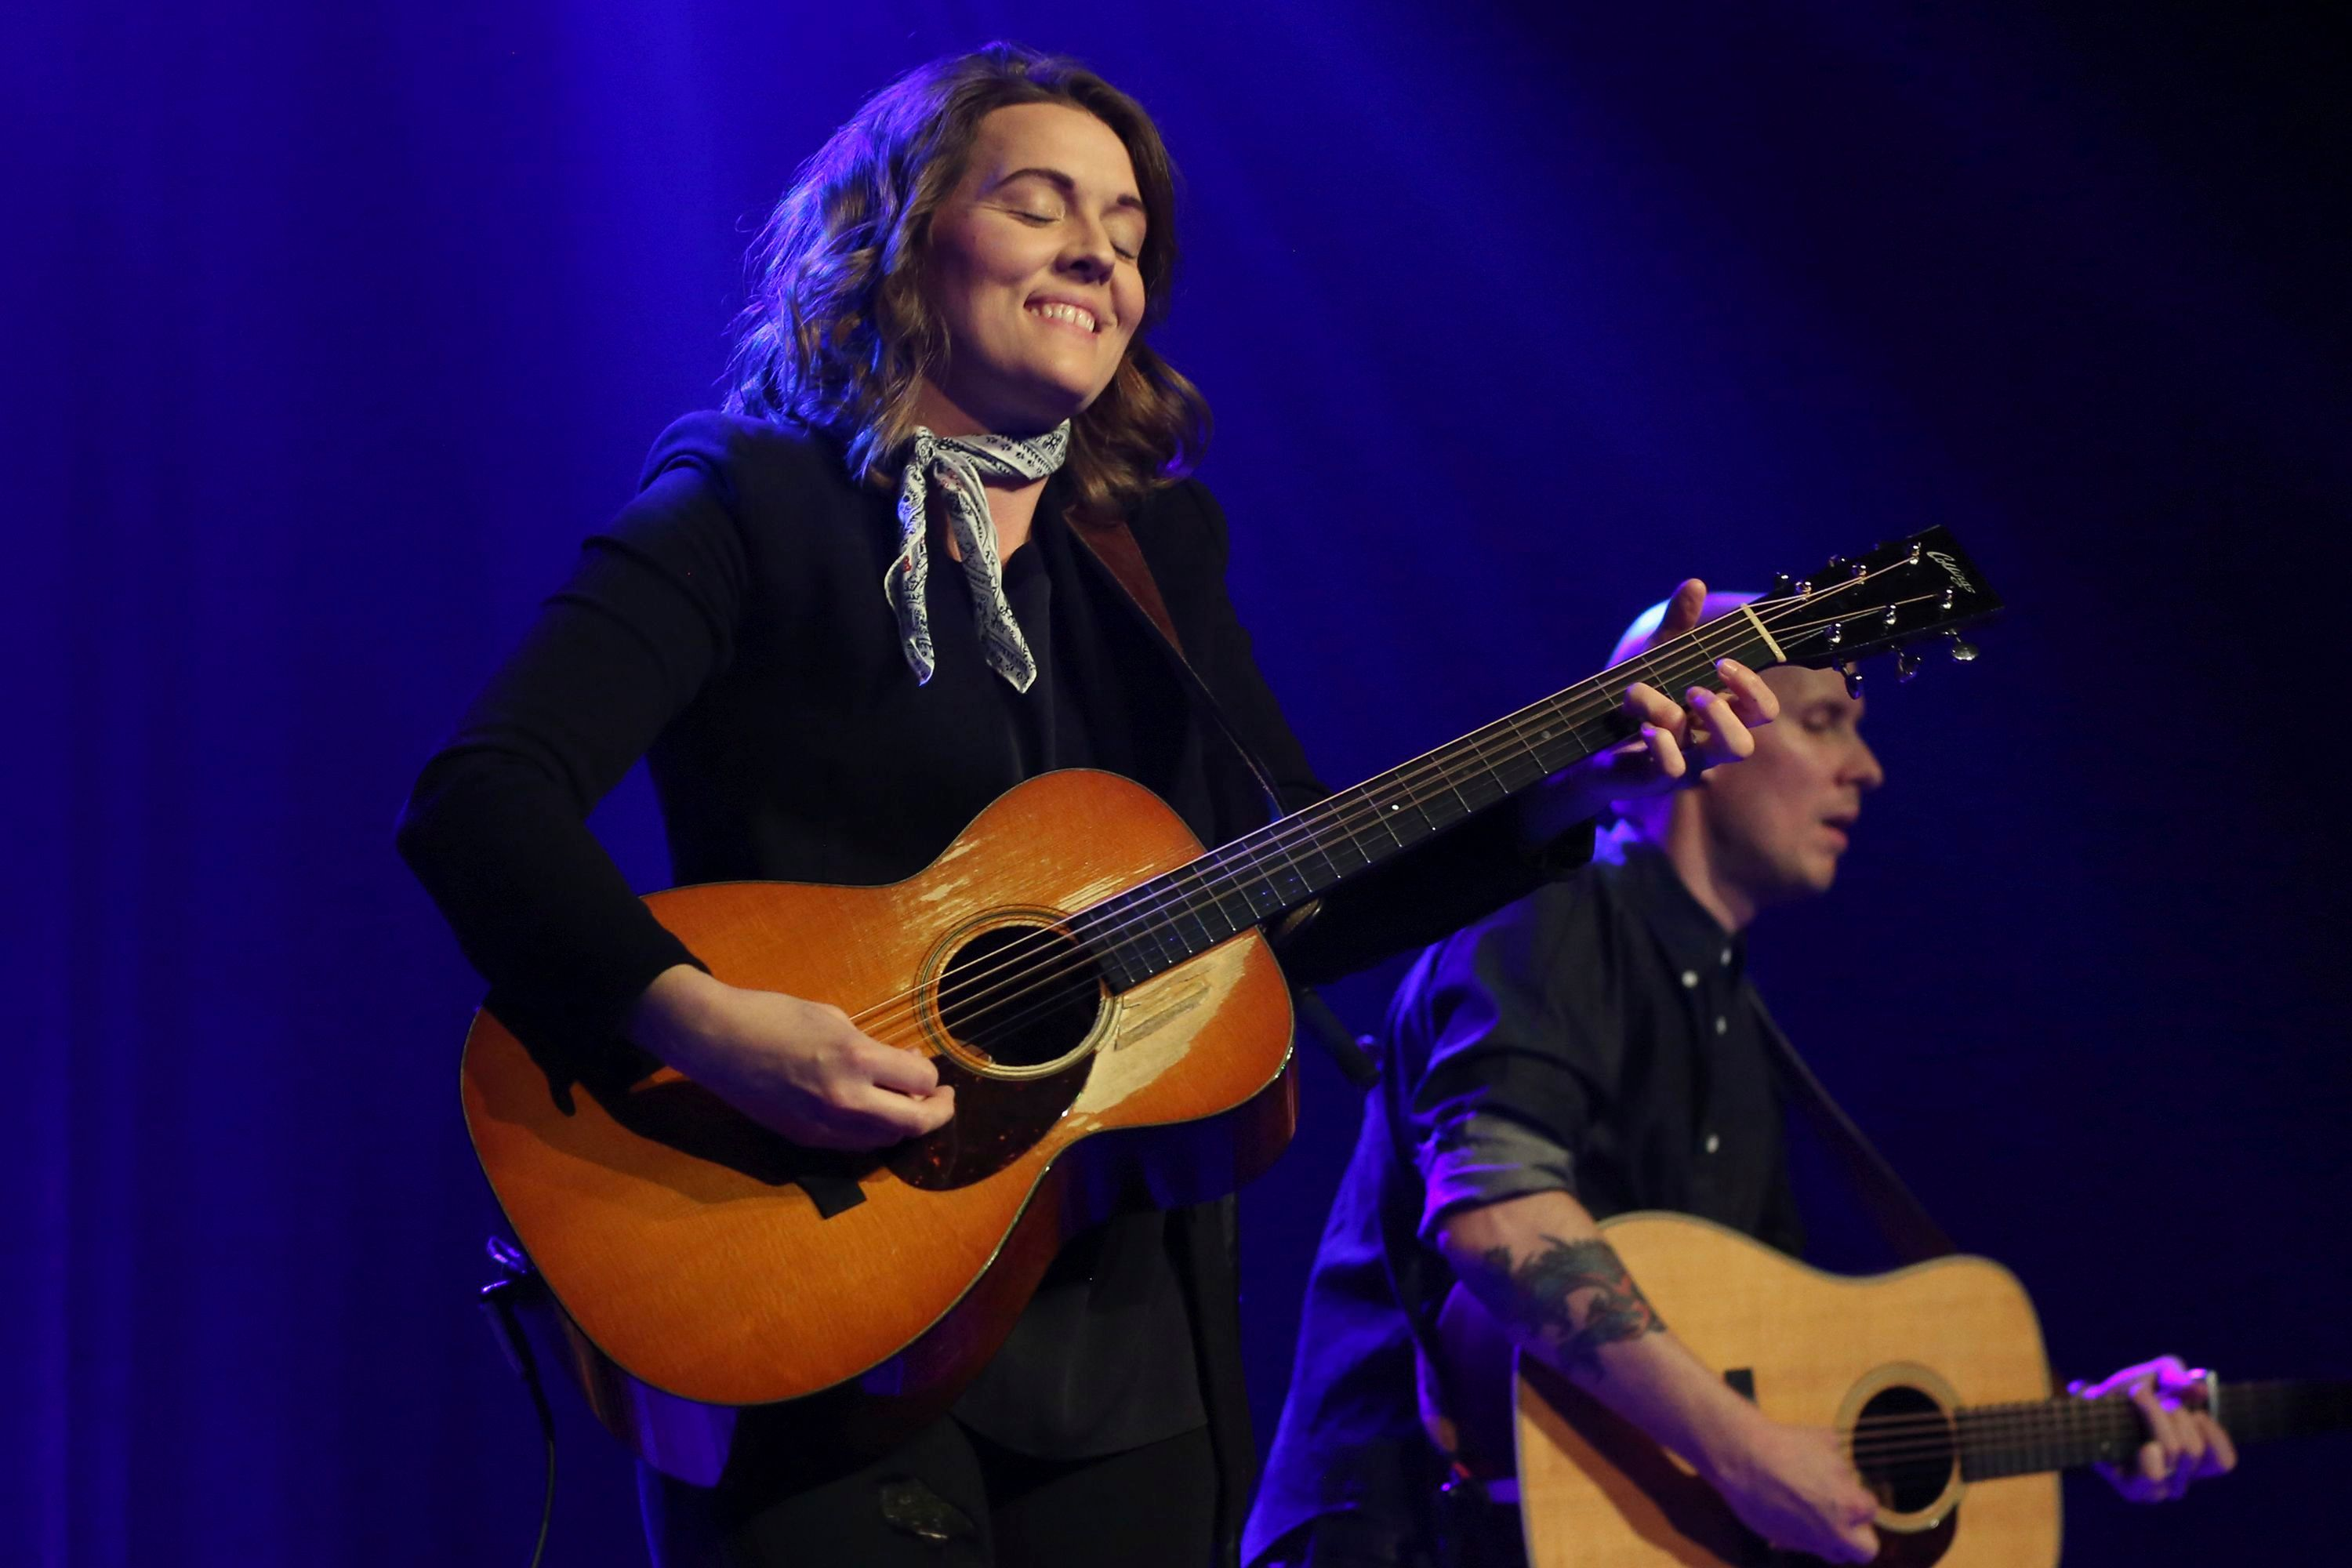 """Artist Brandi Carlile performs in concert on her """"The Story Tour: An Acoustic Evening with Brandi Carlile"""" at the Ryman Auditorium on in Nashville, TennBrandi Carlile in Concert - , TN, Nashville, USA - 24 Apr 2017"""